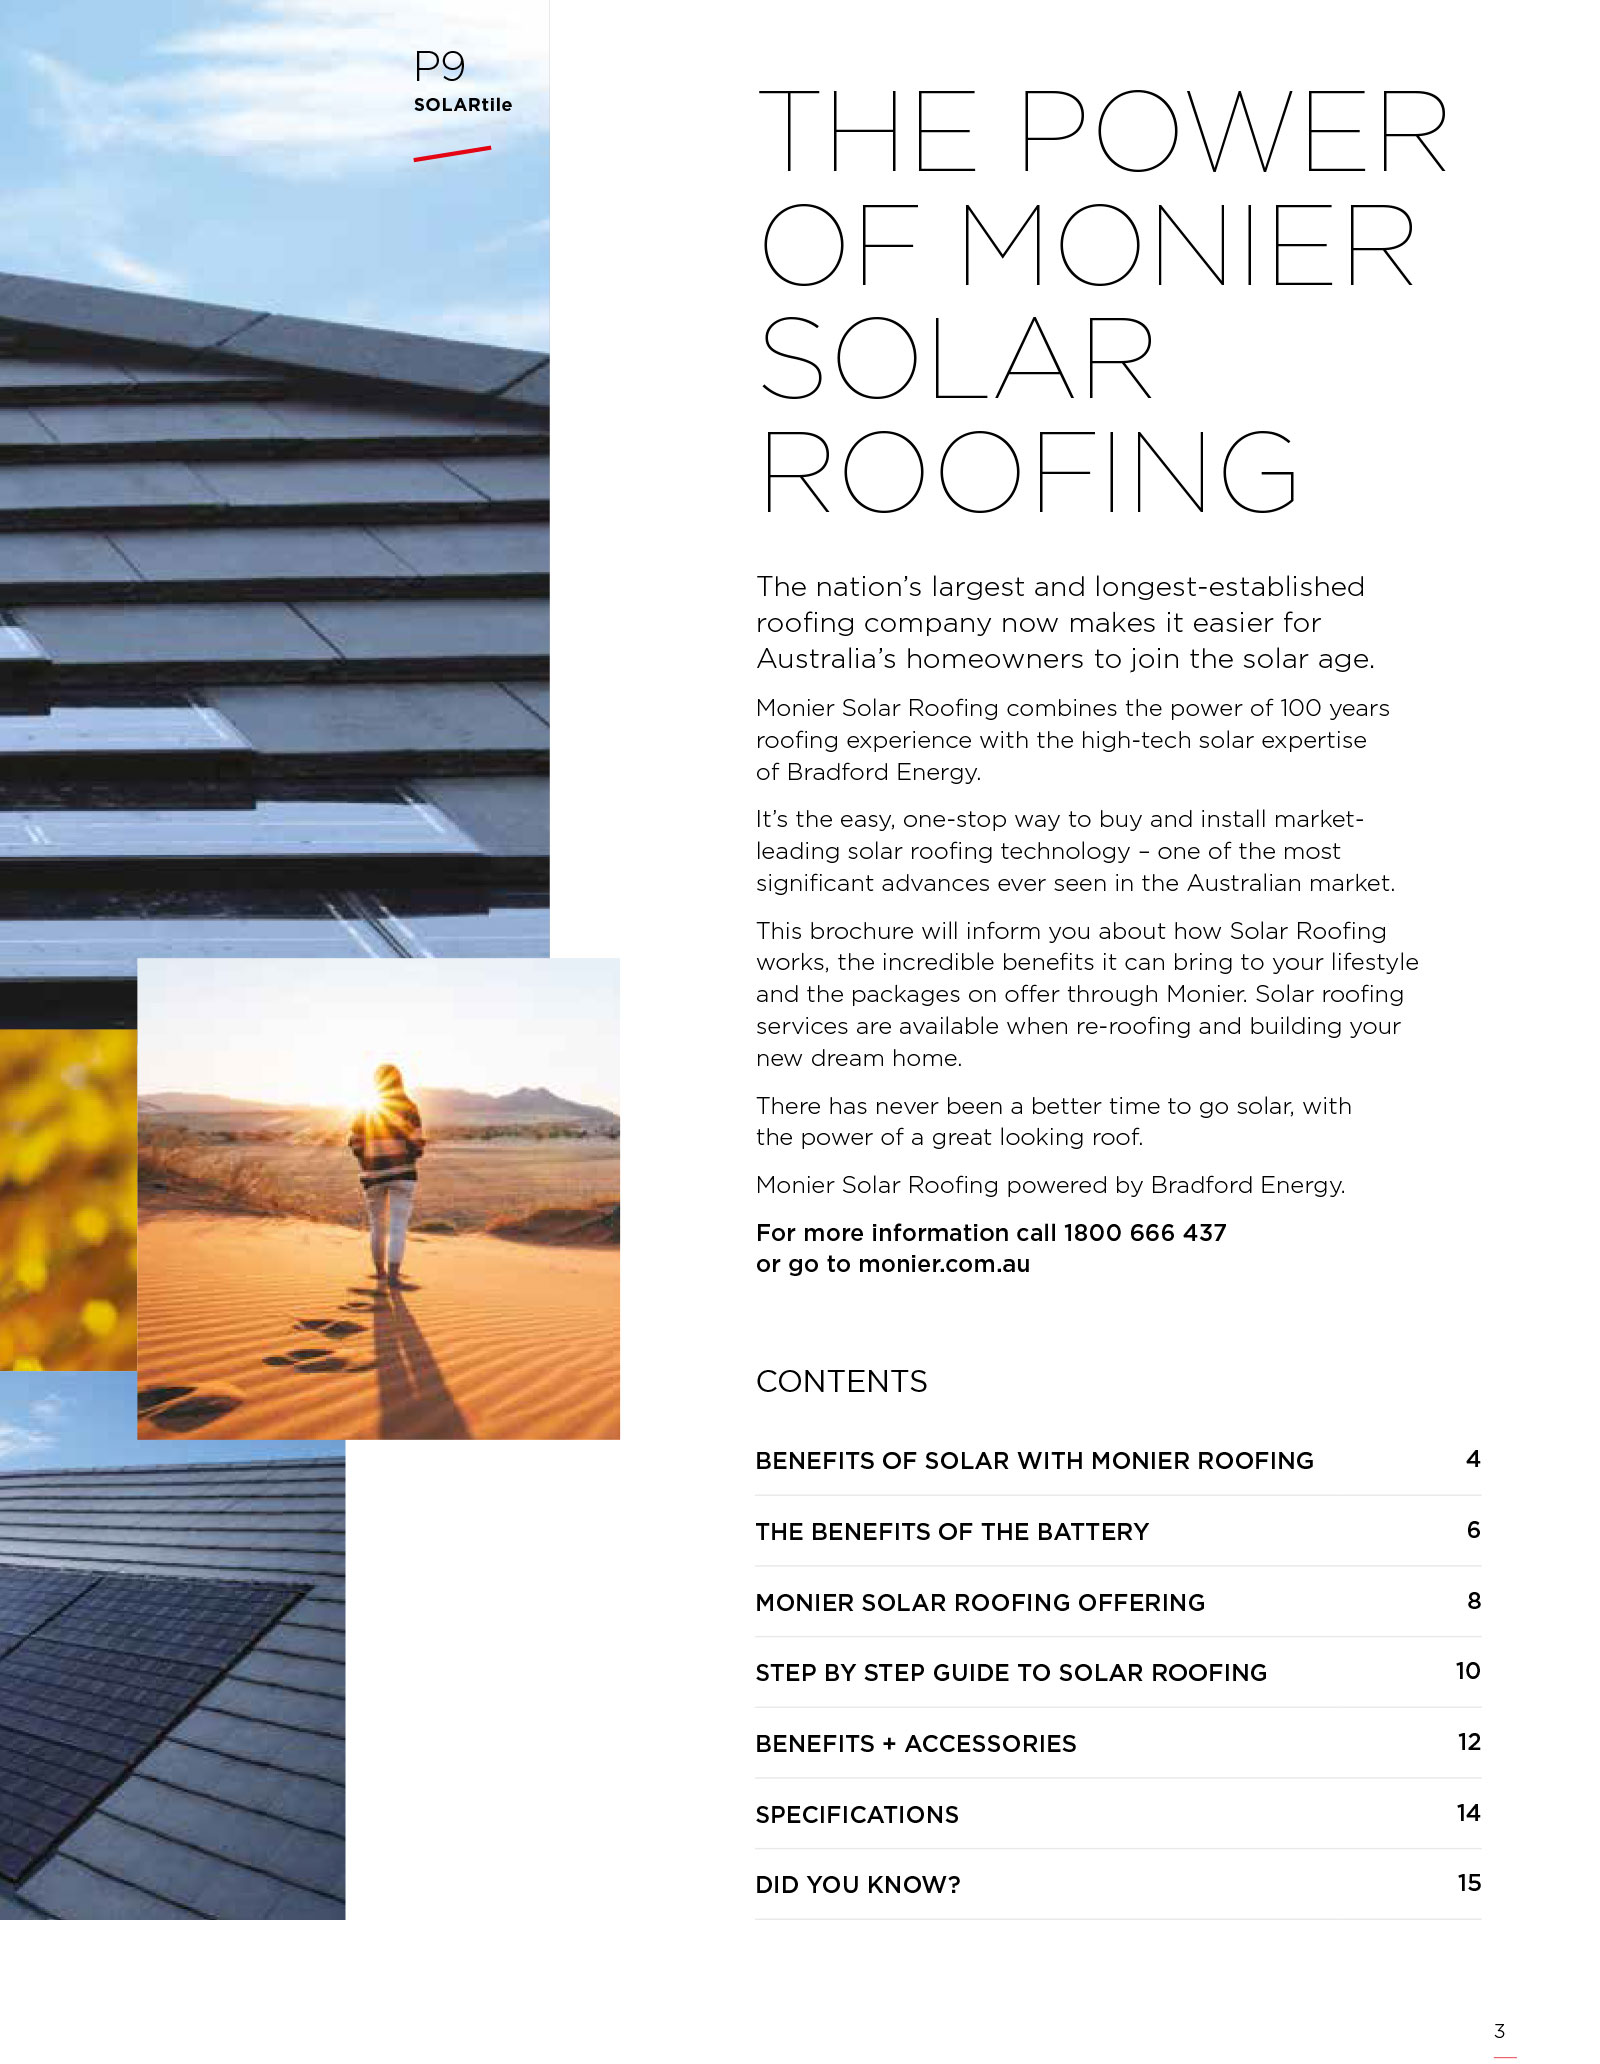 Monier Solar Roofing Raving Roofing Melbourne